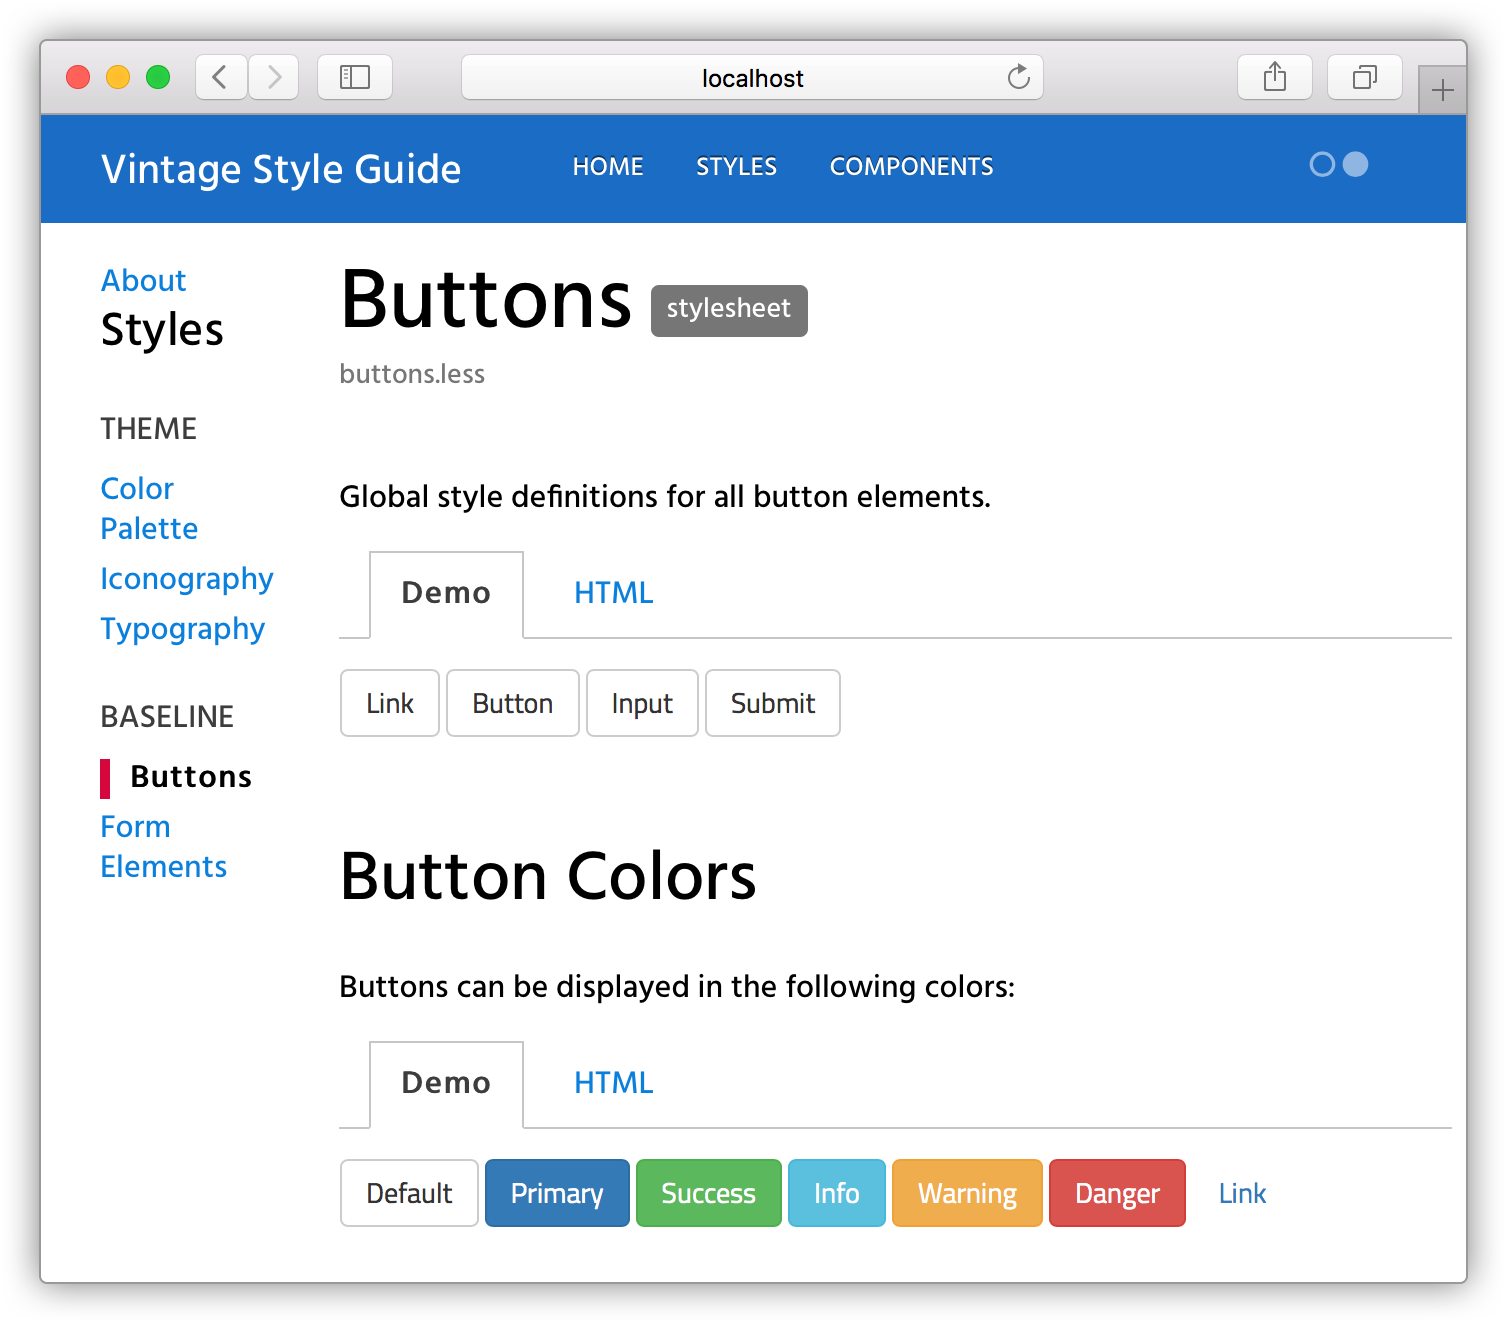 style-guide-buttons-5